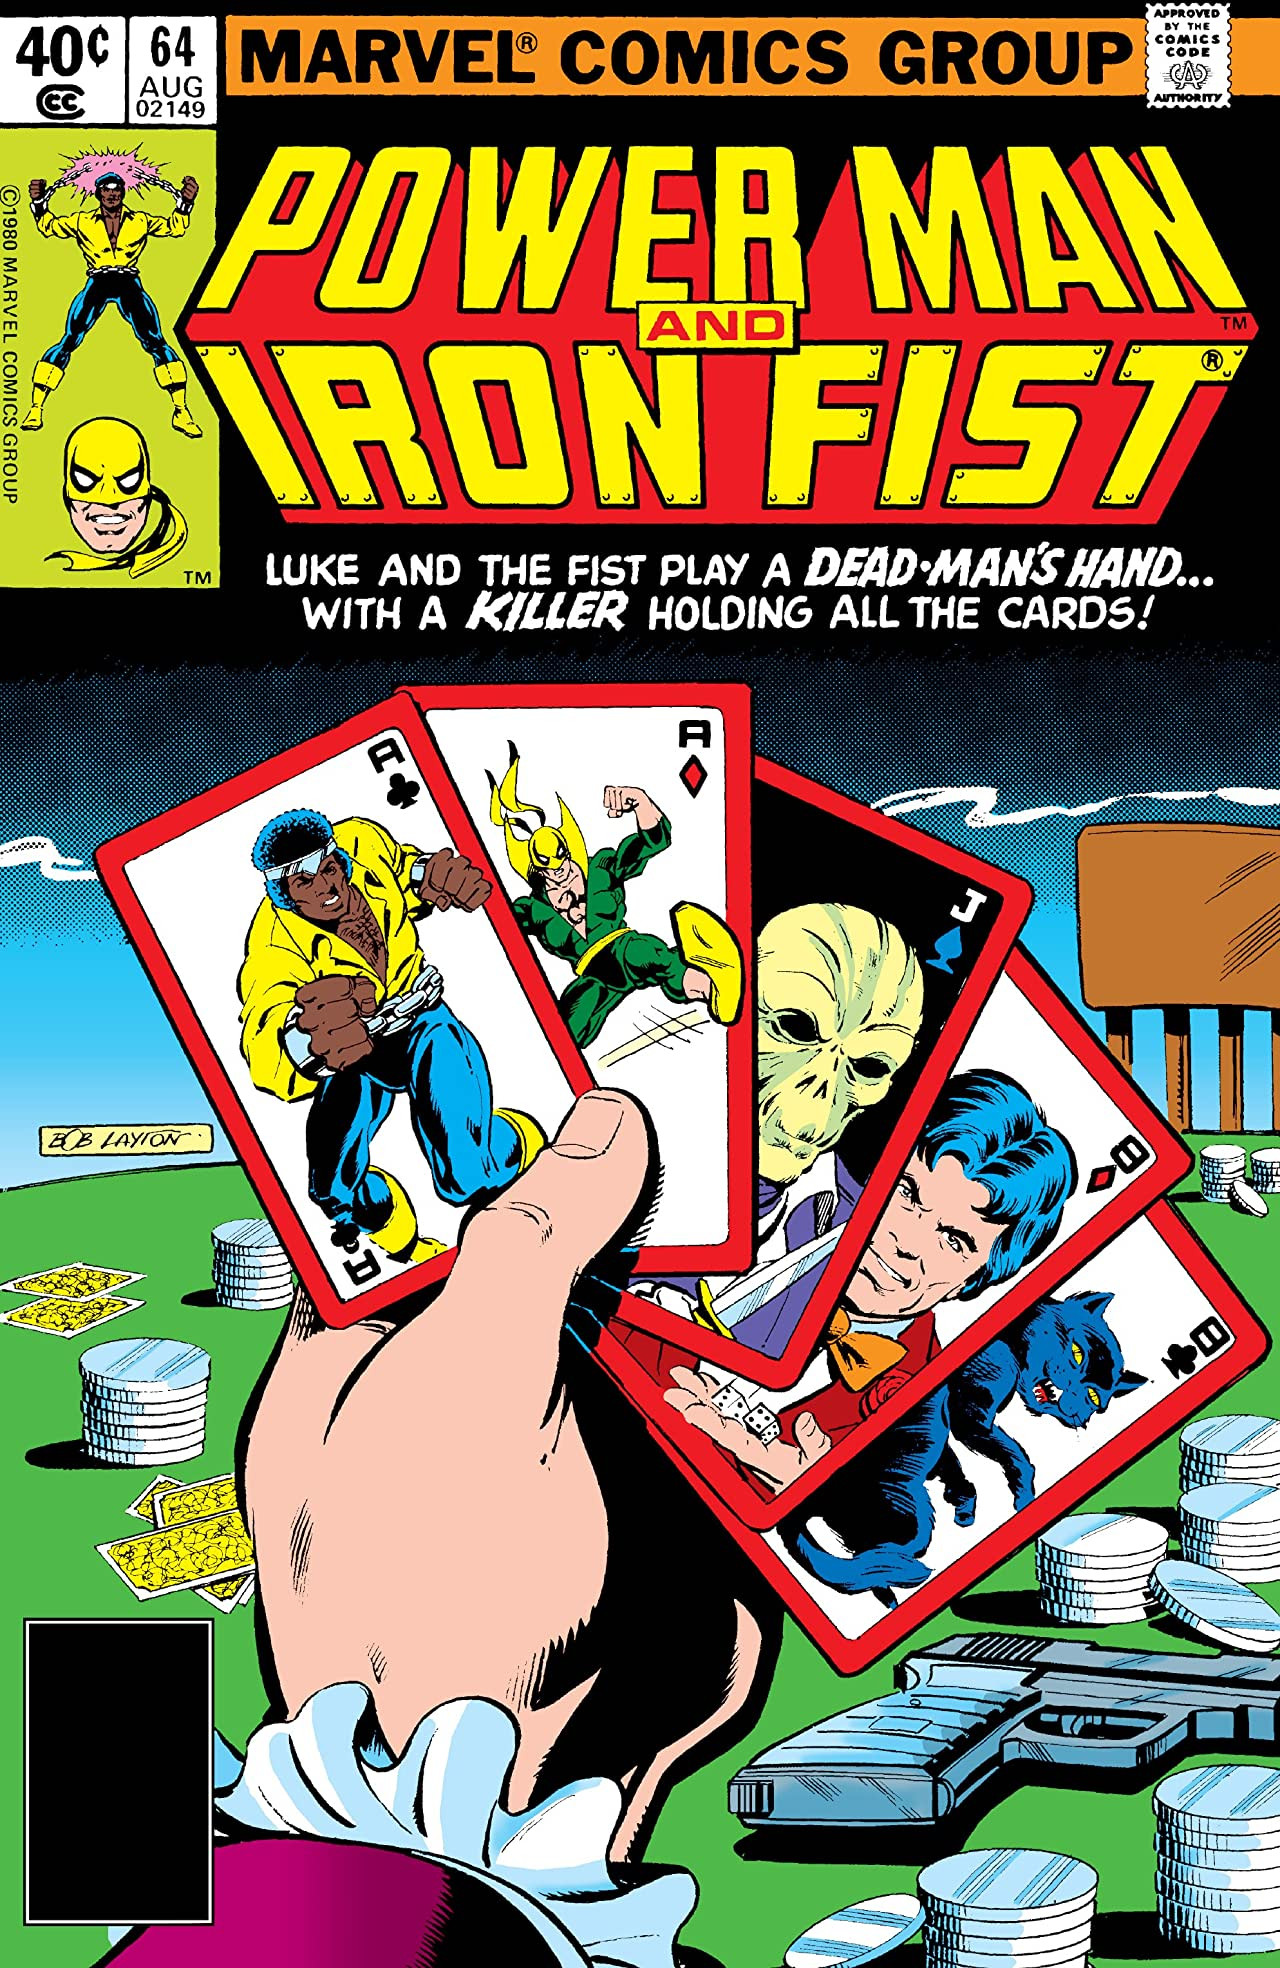 Power Man and Iron Fist Vol 1 64